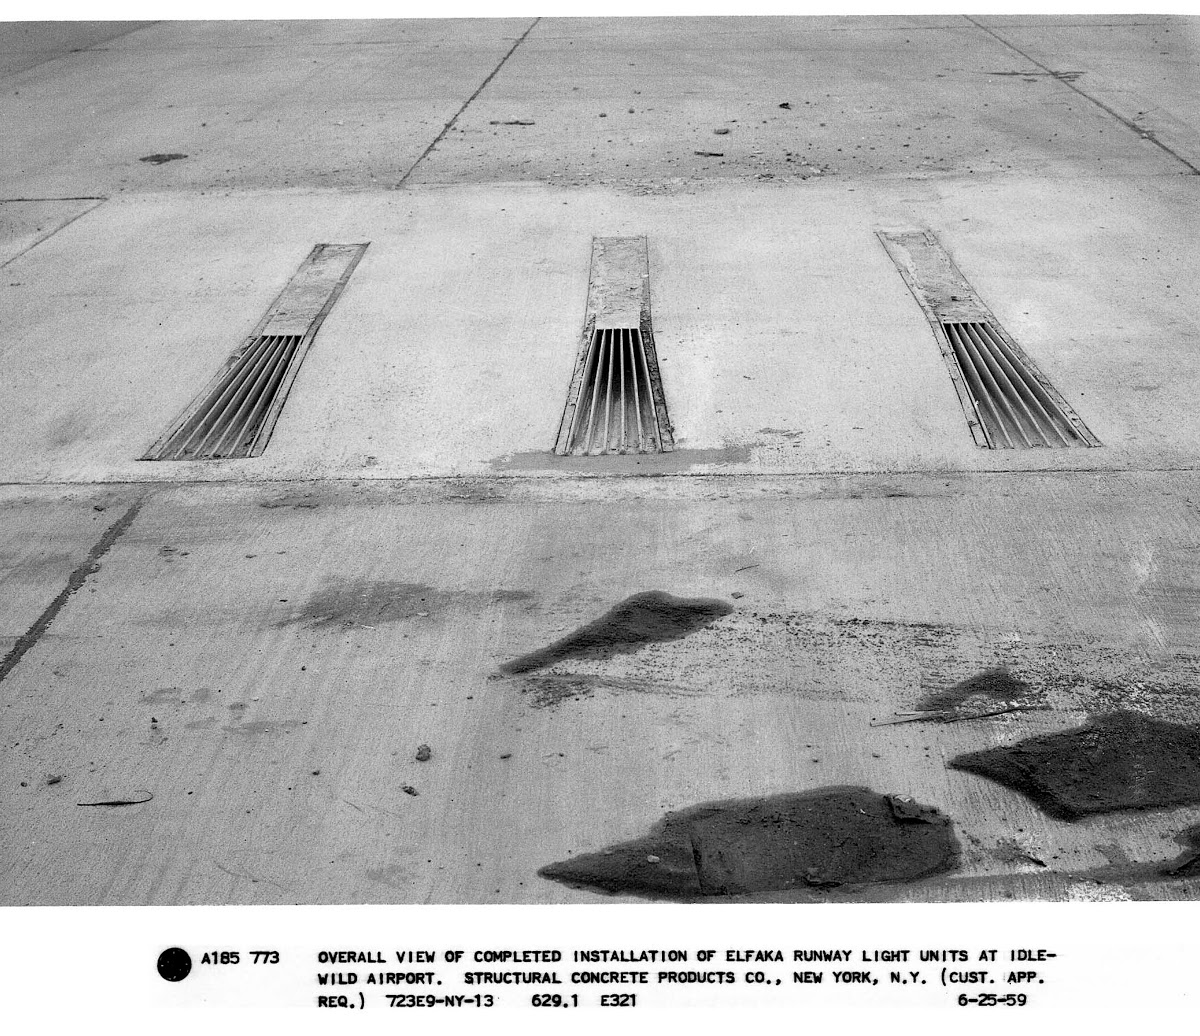 Overall View Of Completed Installation Of Elfaka Runway Light Units